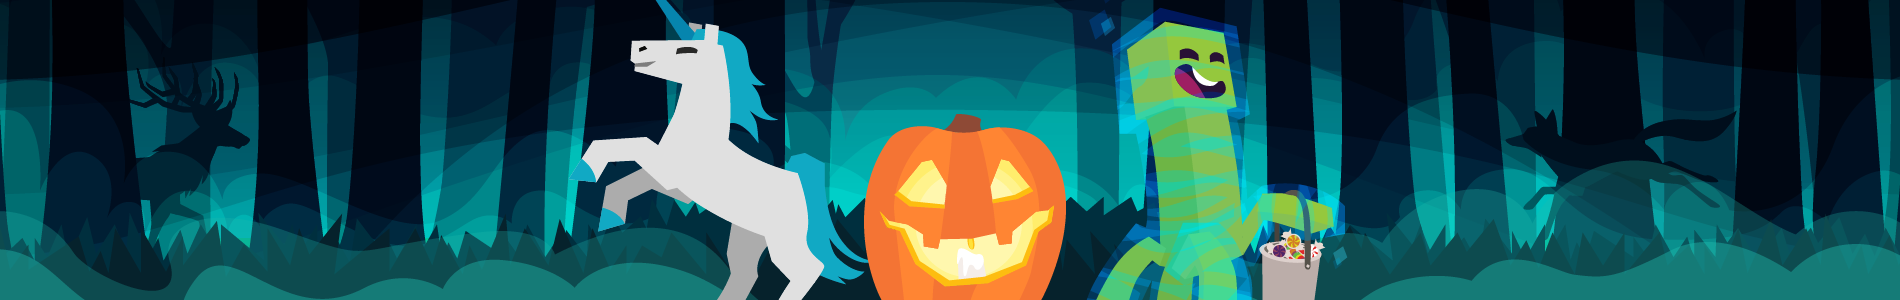 Header image of a charged creeper and unicorn with a pumpkin, set in spooky woods.